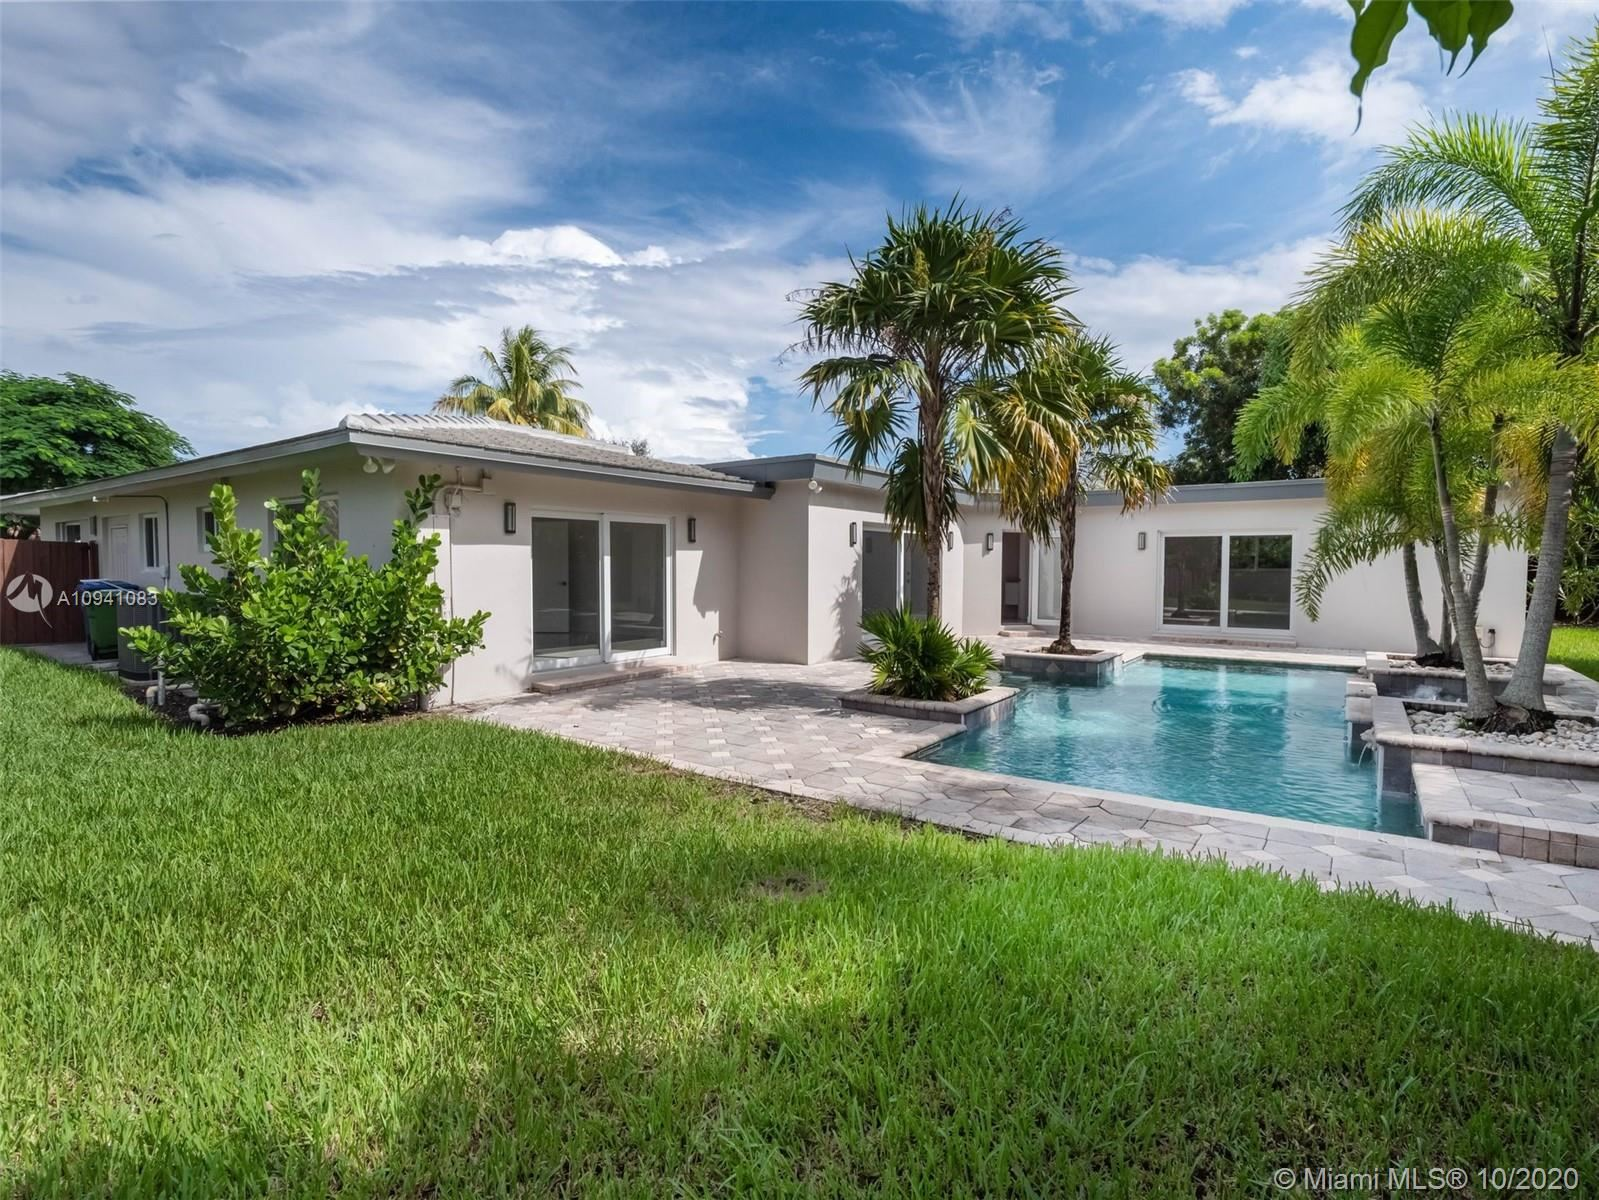 2133 NW 4th Ave, Wilton Manors, FL 33311 - #: A10941083